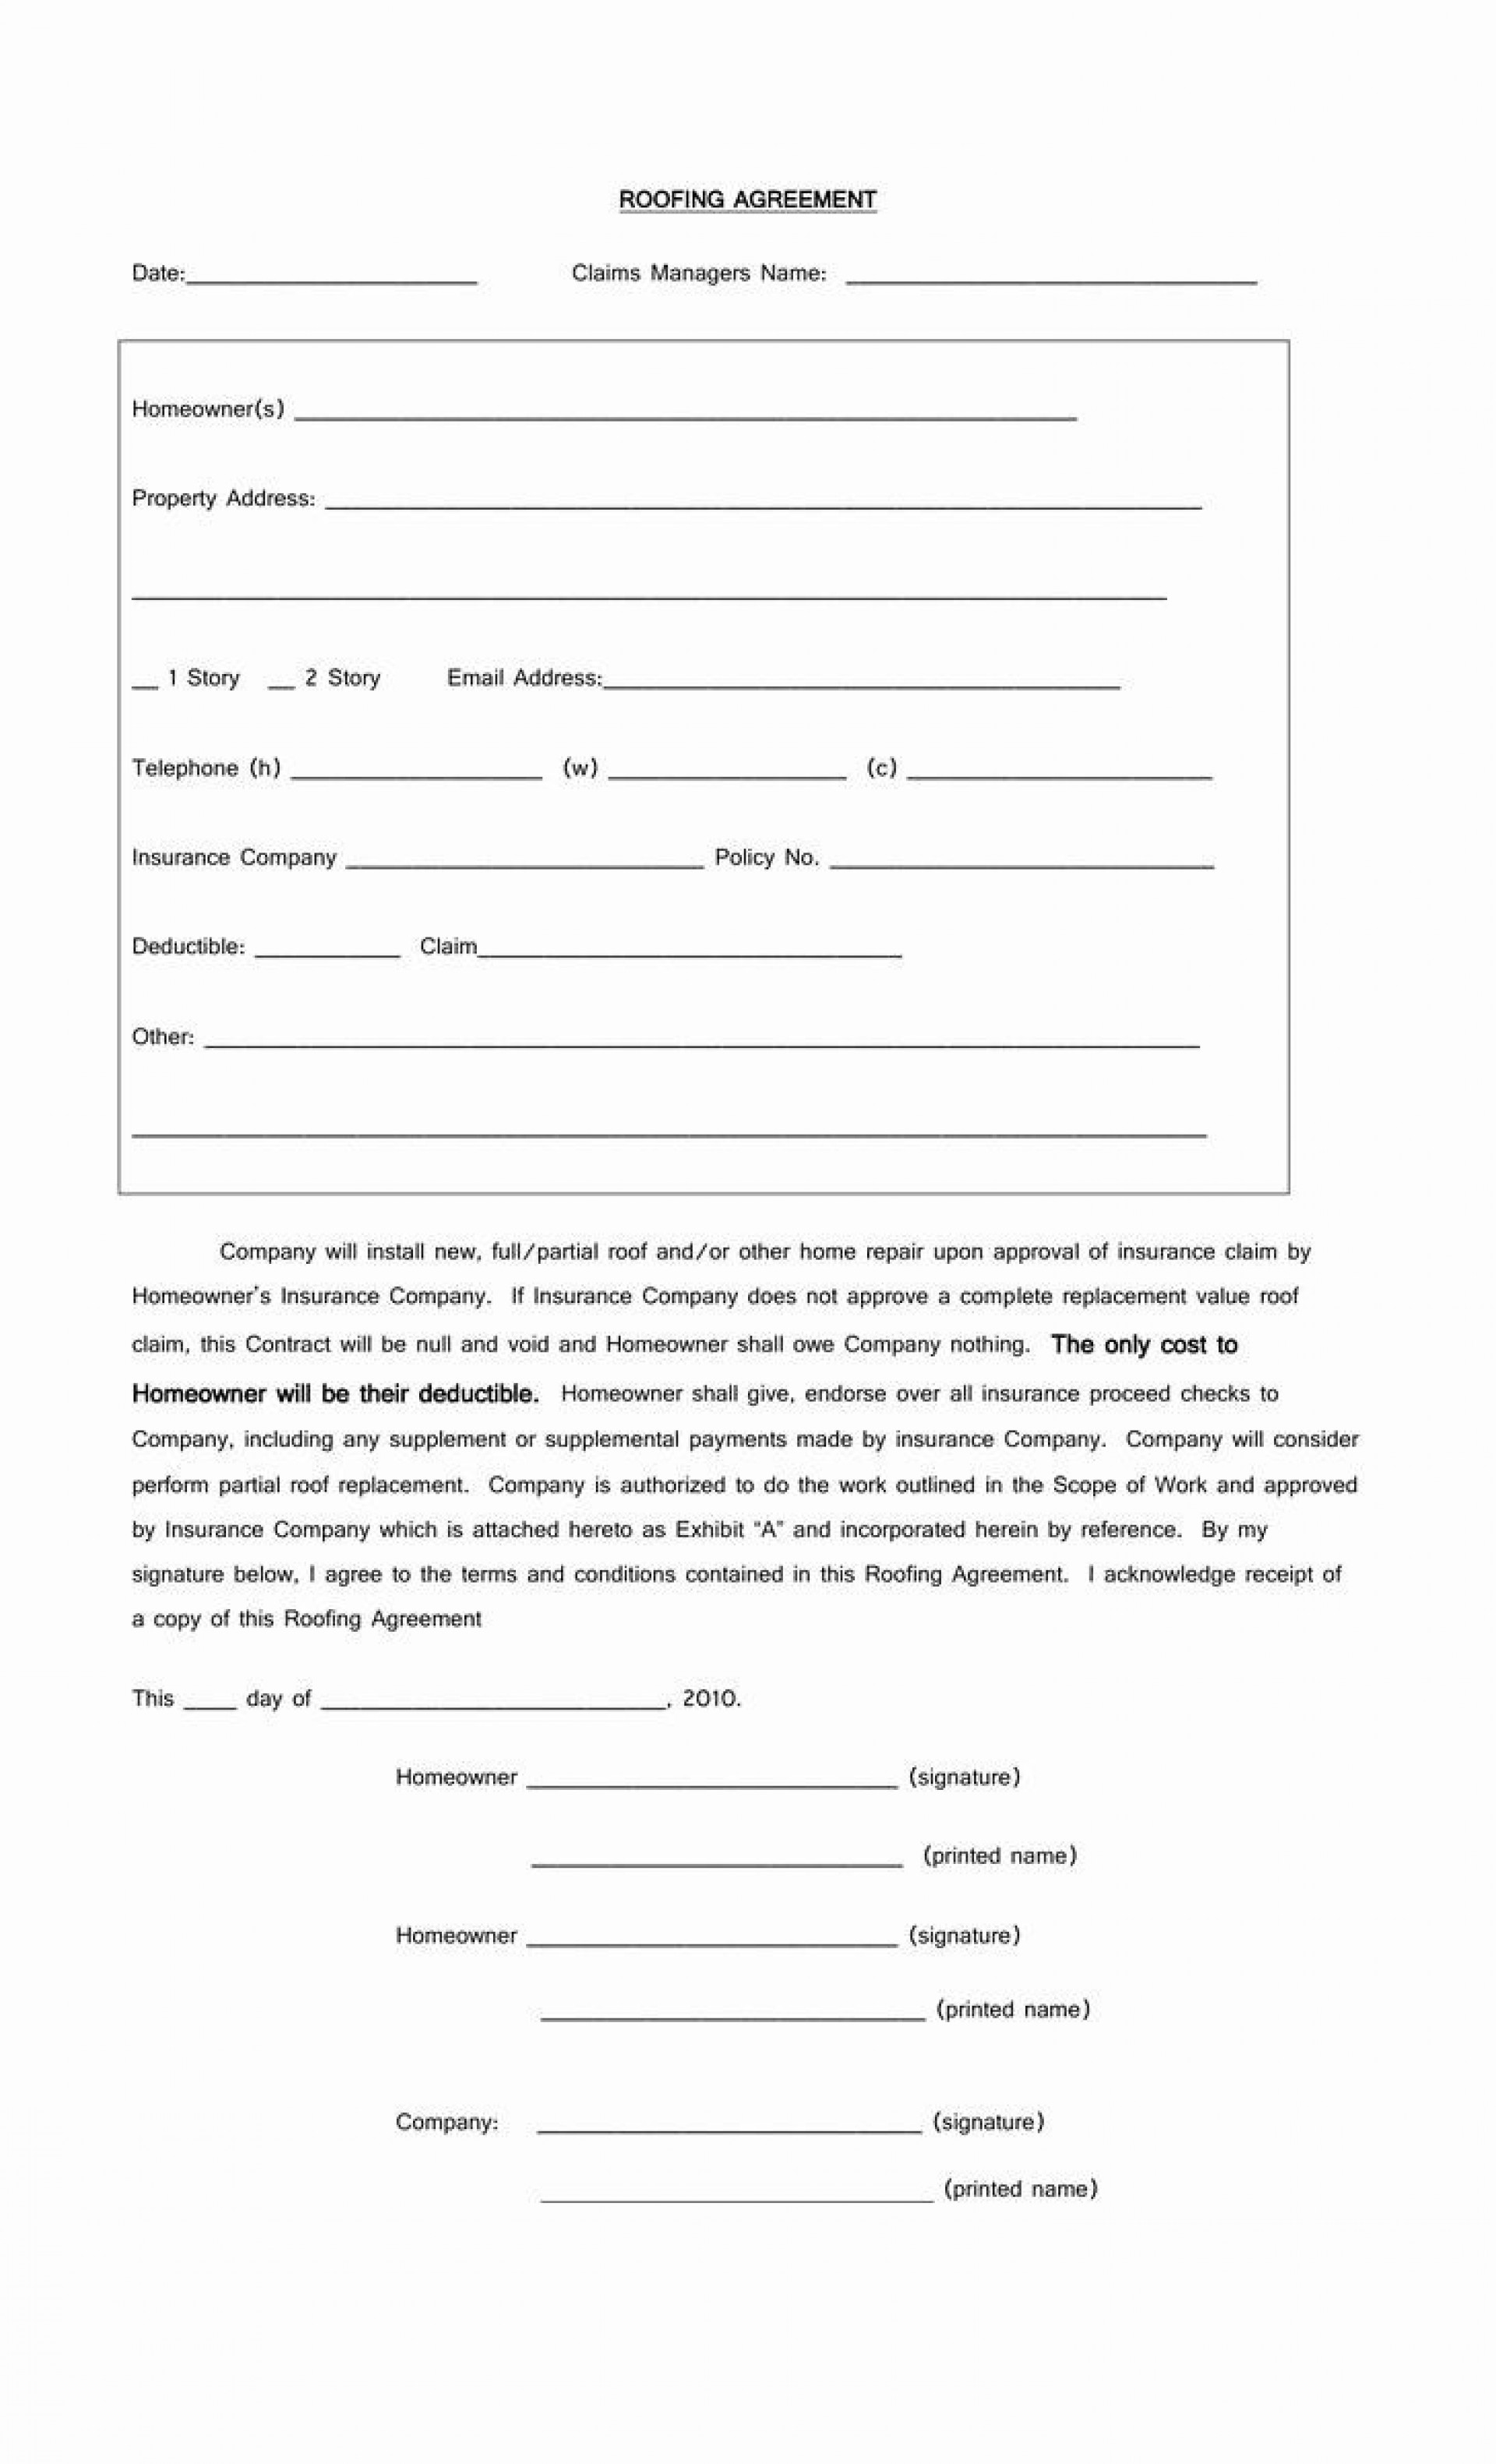 005 Surprising Free Residential Roofing Contract Template Sample 1920